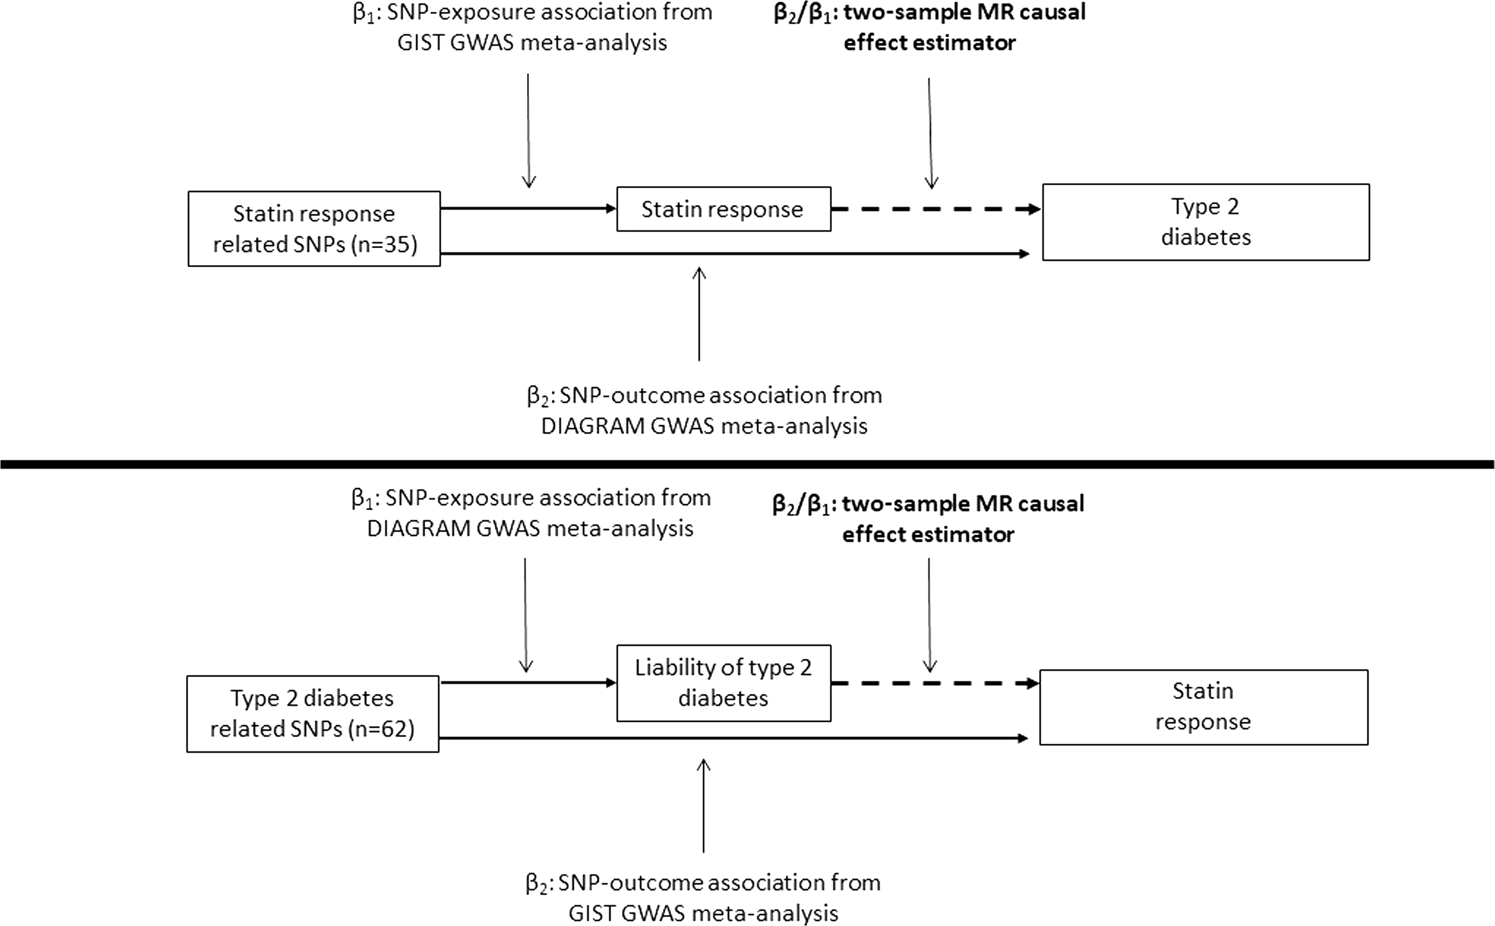 Statin-induced LDL cholesterol response and type 2 diabetes: a bidirec